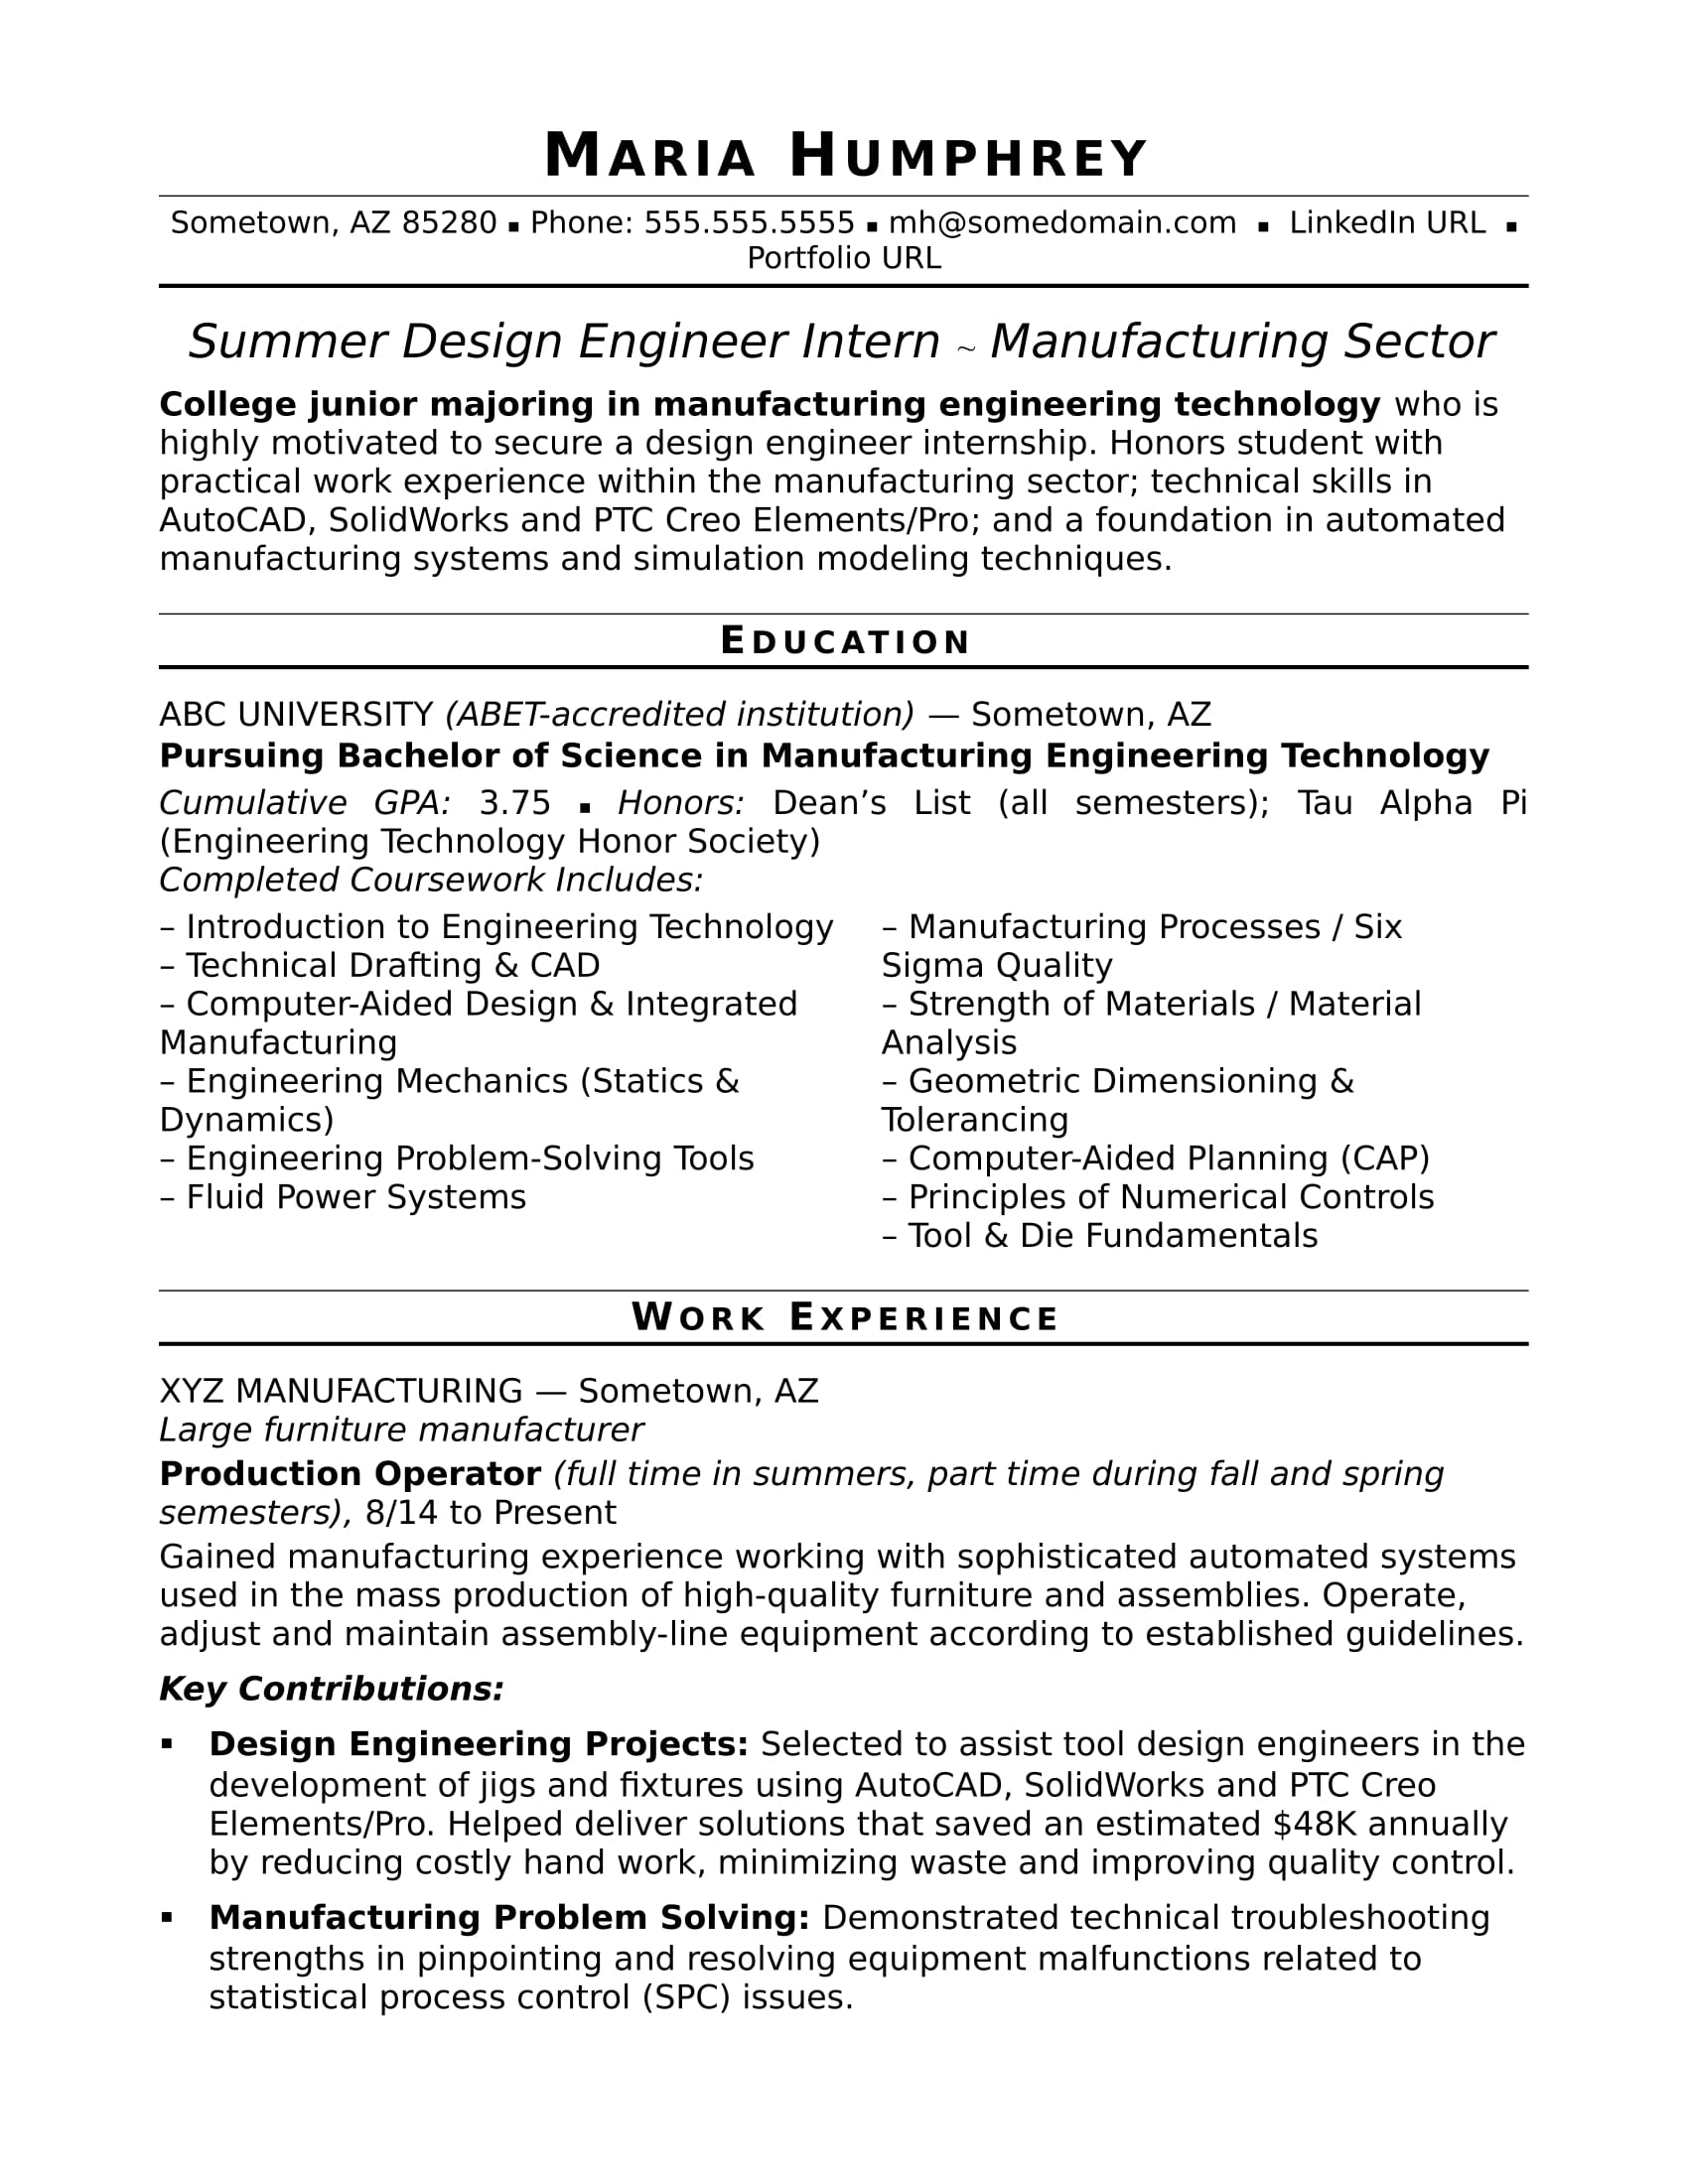 Sample Resume For An Entry Level Design Engineer Monster